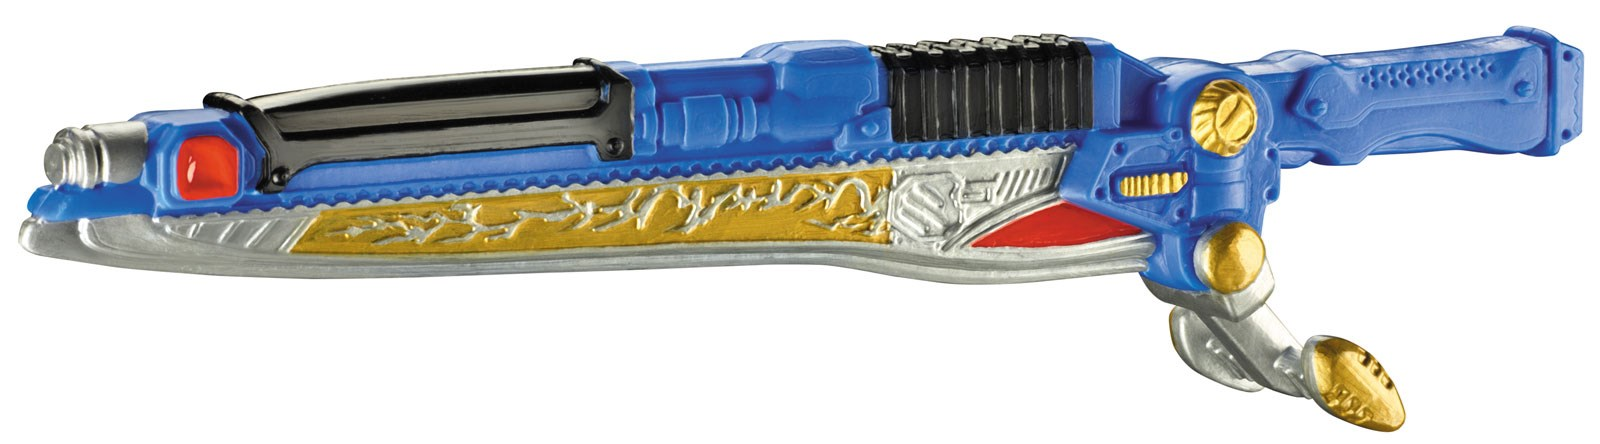 Power Rangers Dino Charge: Special Ranger Weapon For Kids